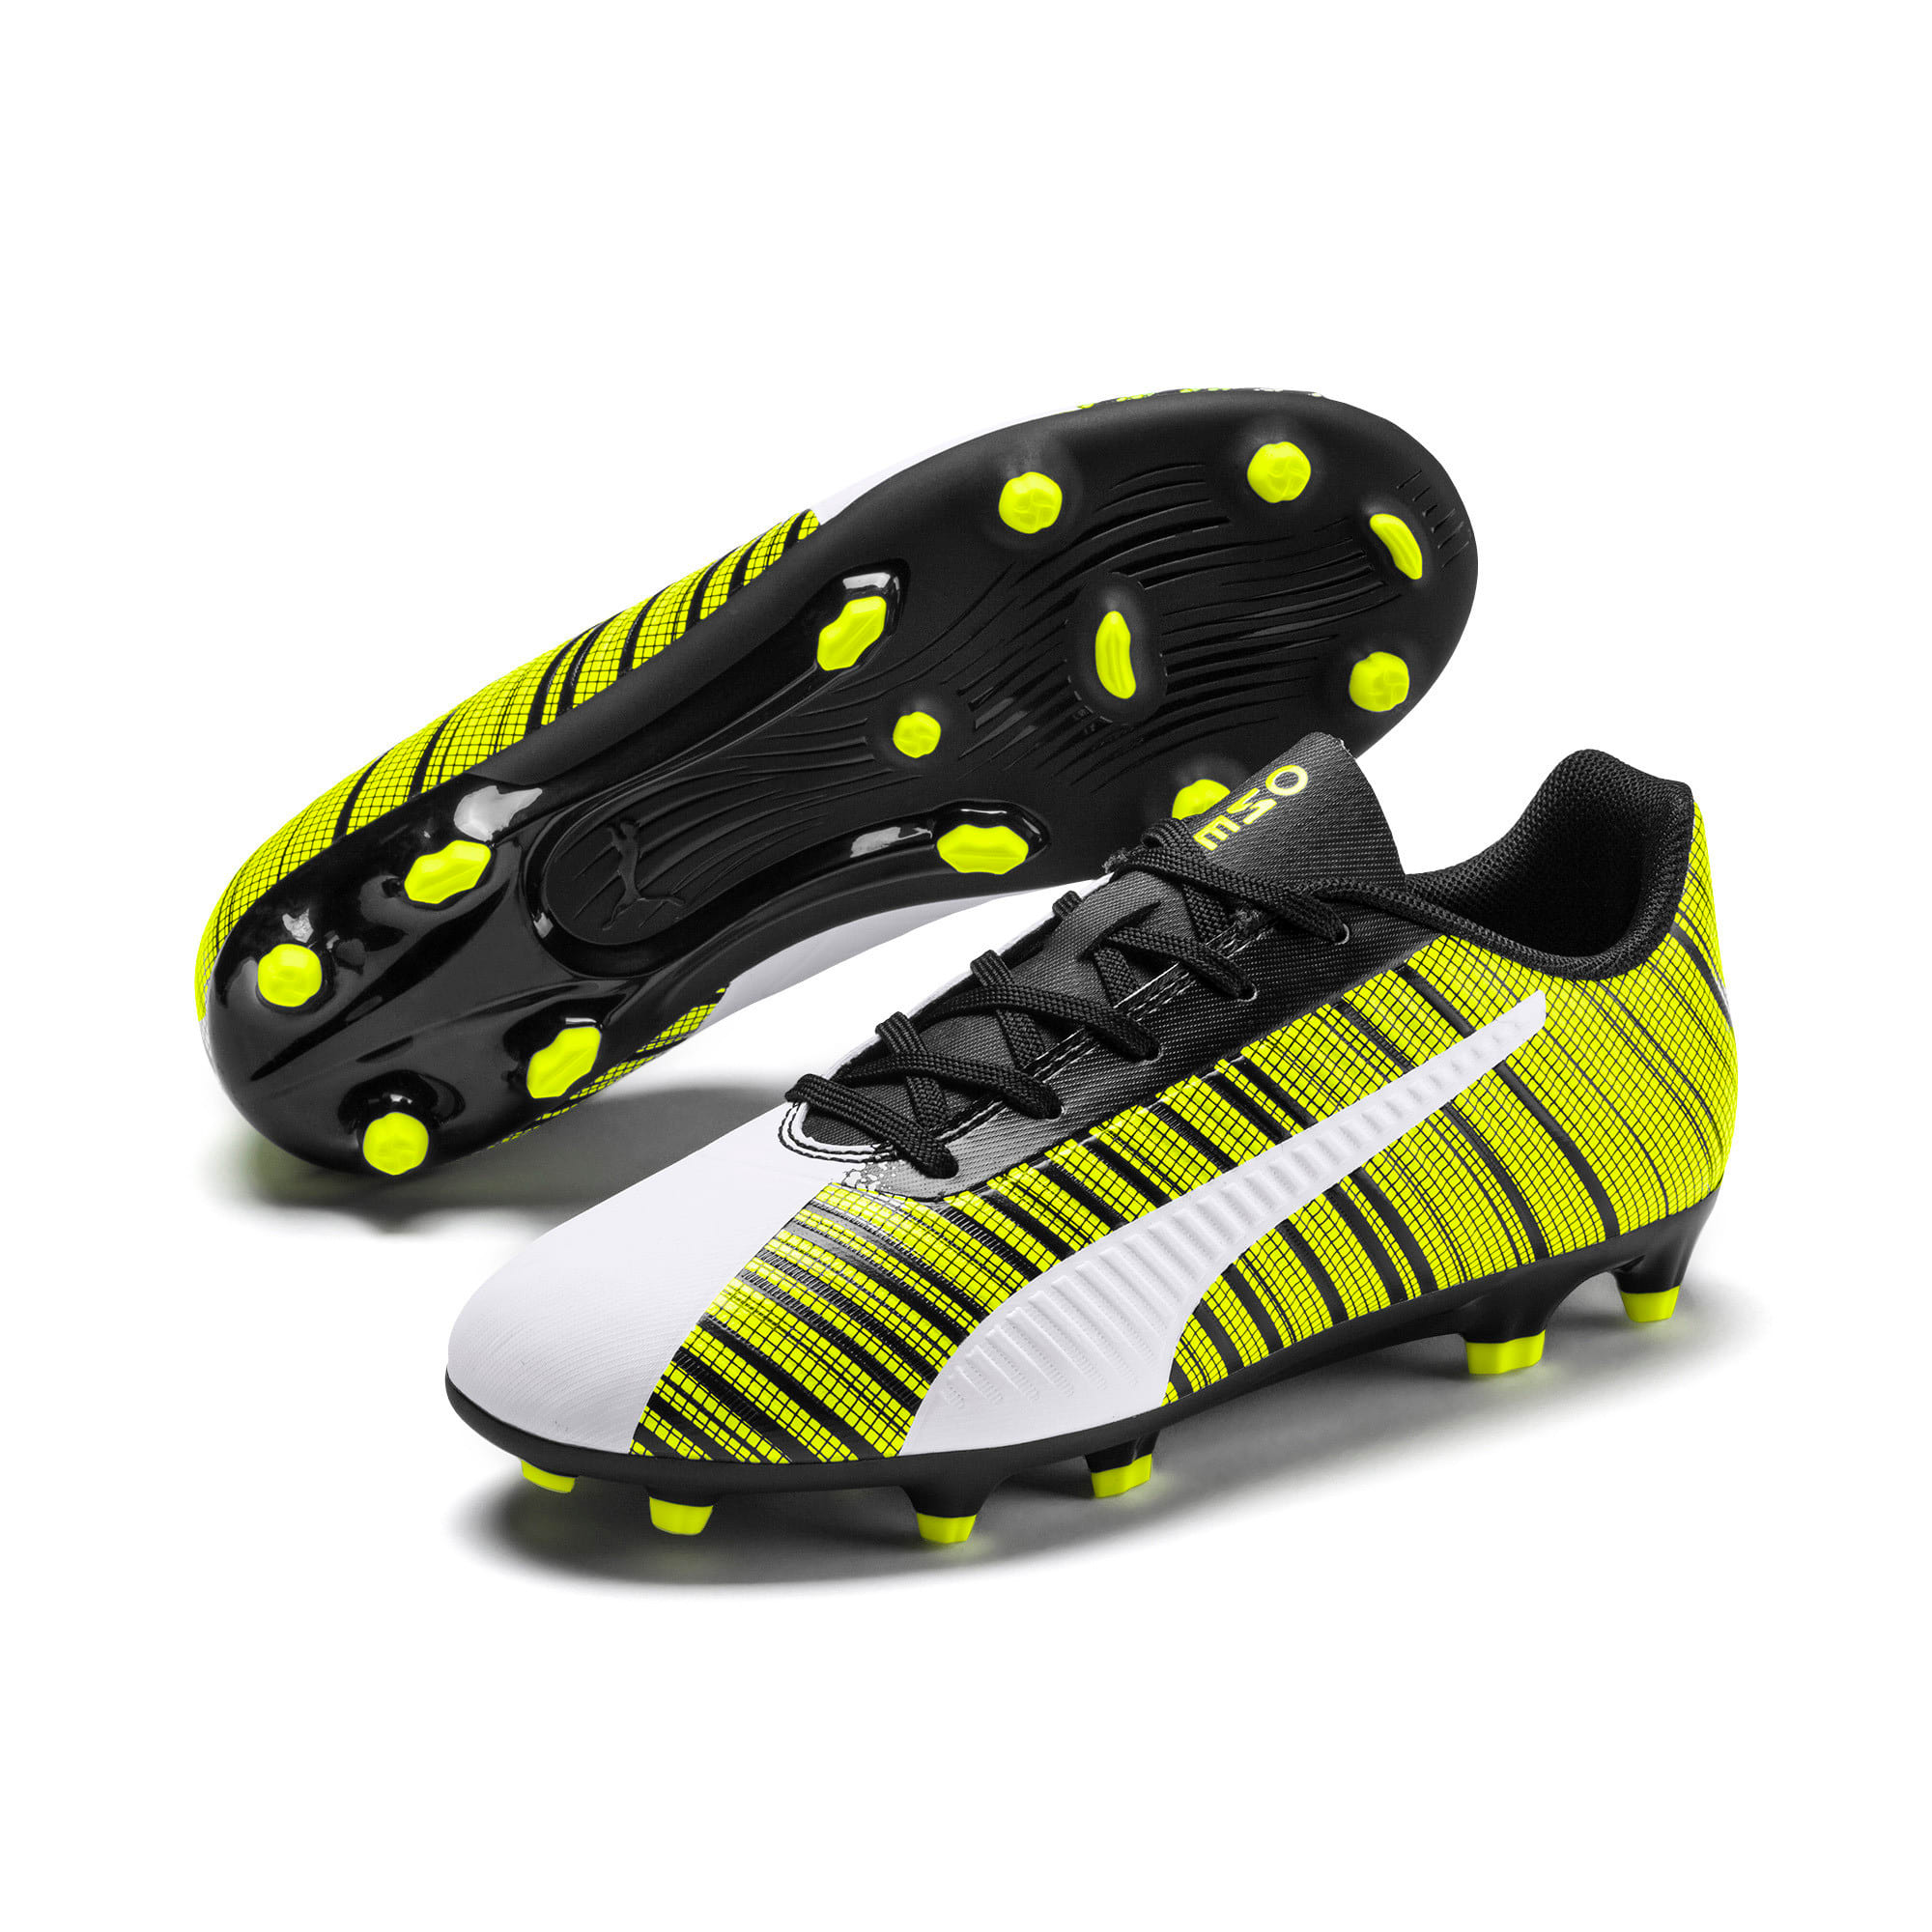 Thumbnail 2 of PUMA ONE 5.4 FG/AG Youth Fußballschuhe, White- Black-Yellow Alert, medium